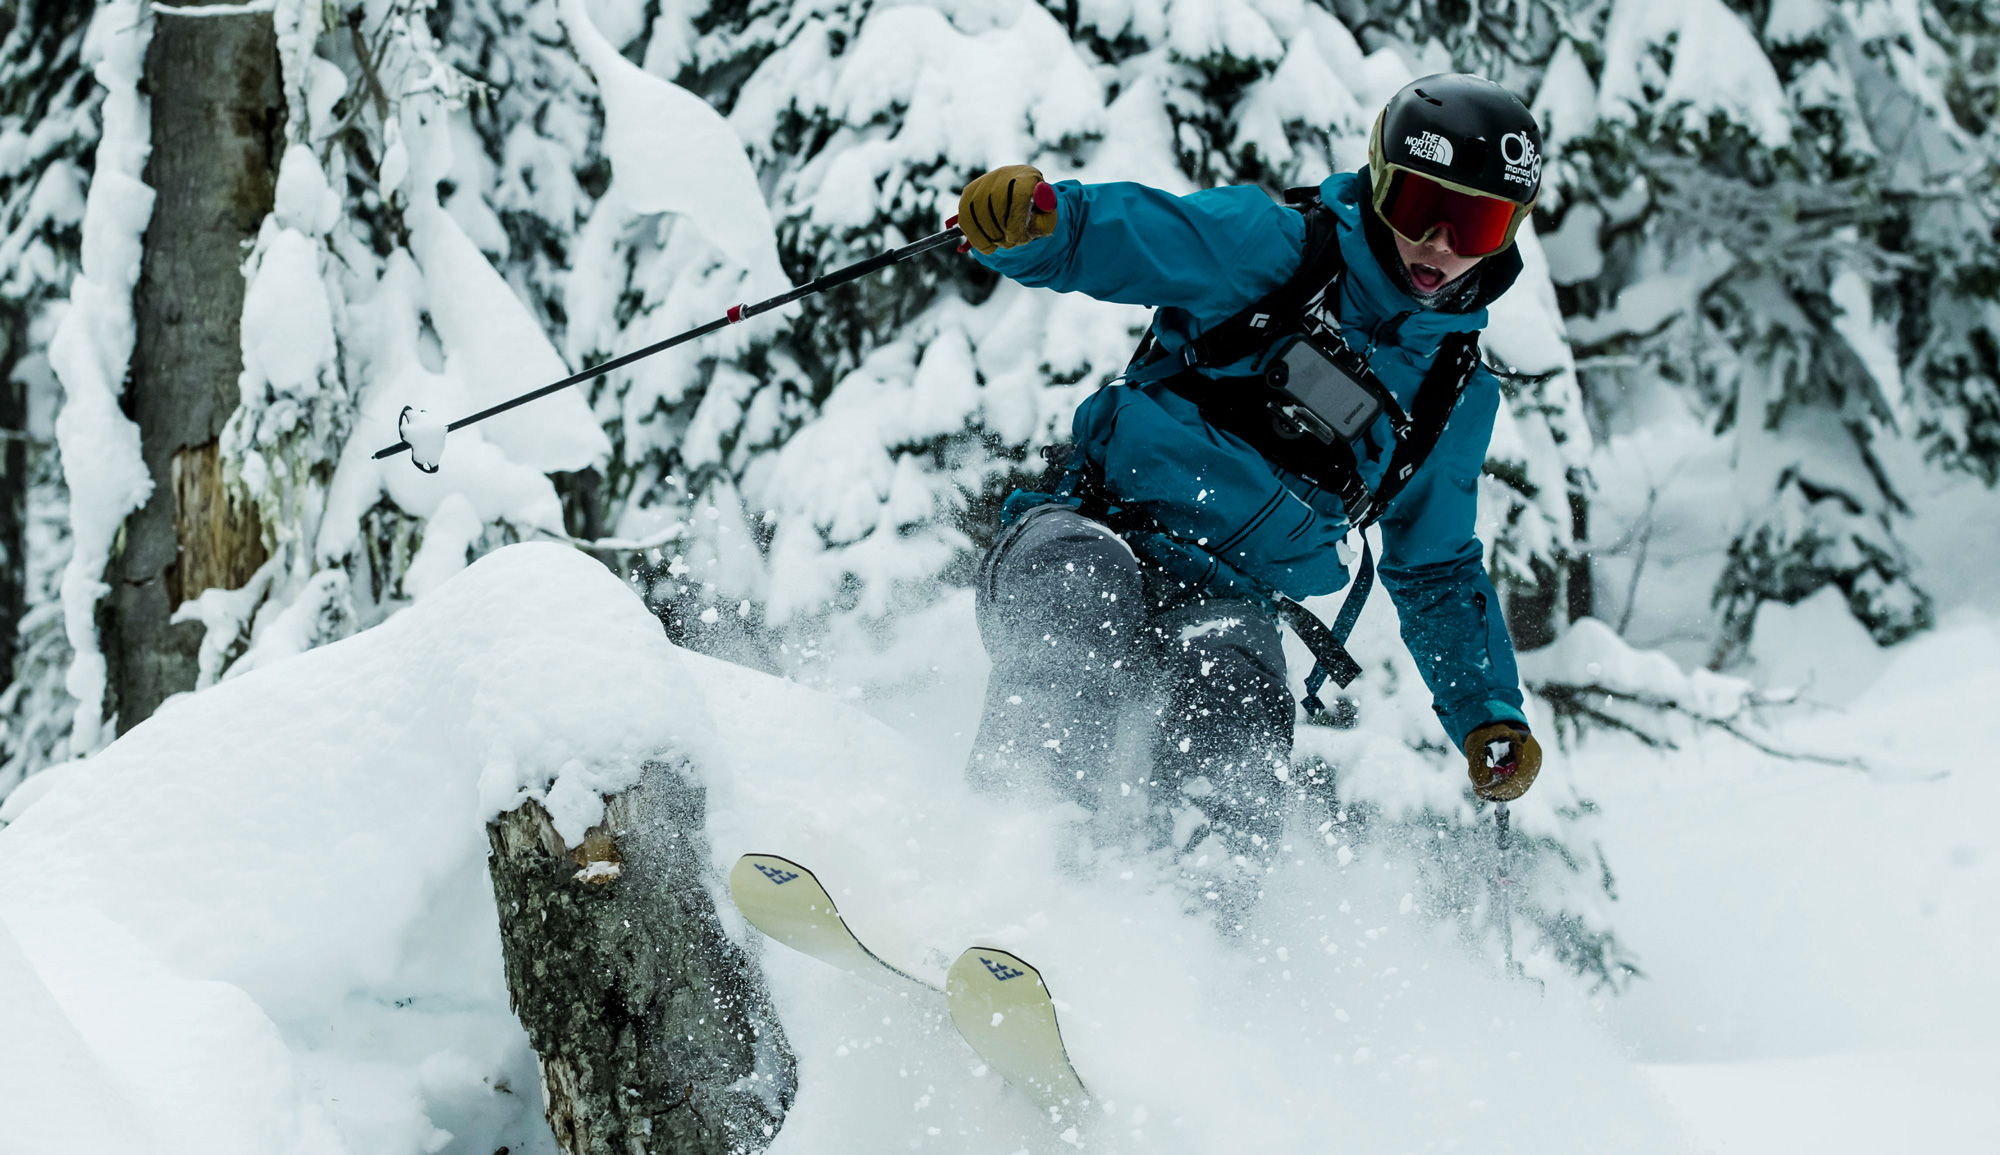 skiier brandon long sporting a hitcase pro and chestr chest mount harness